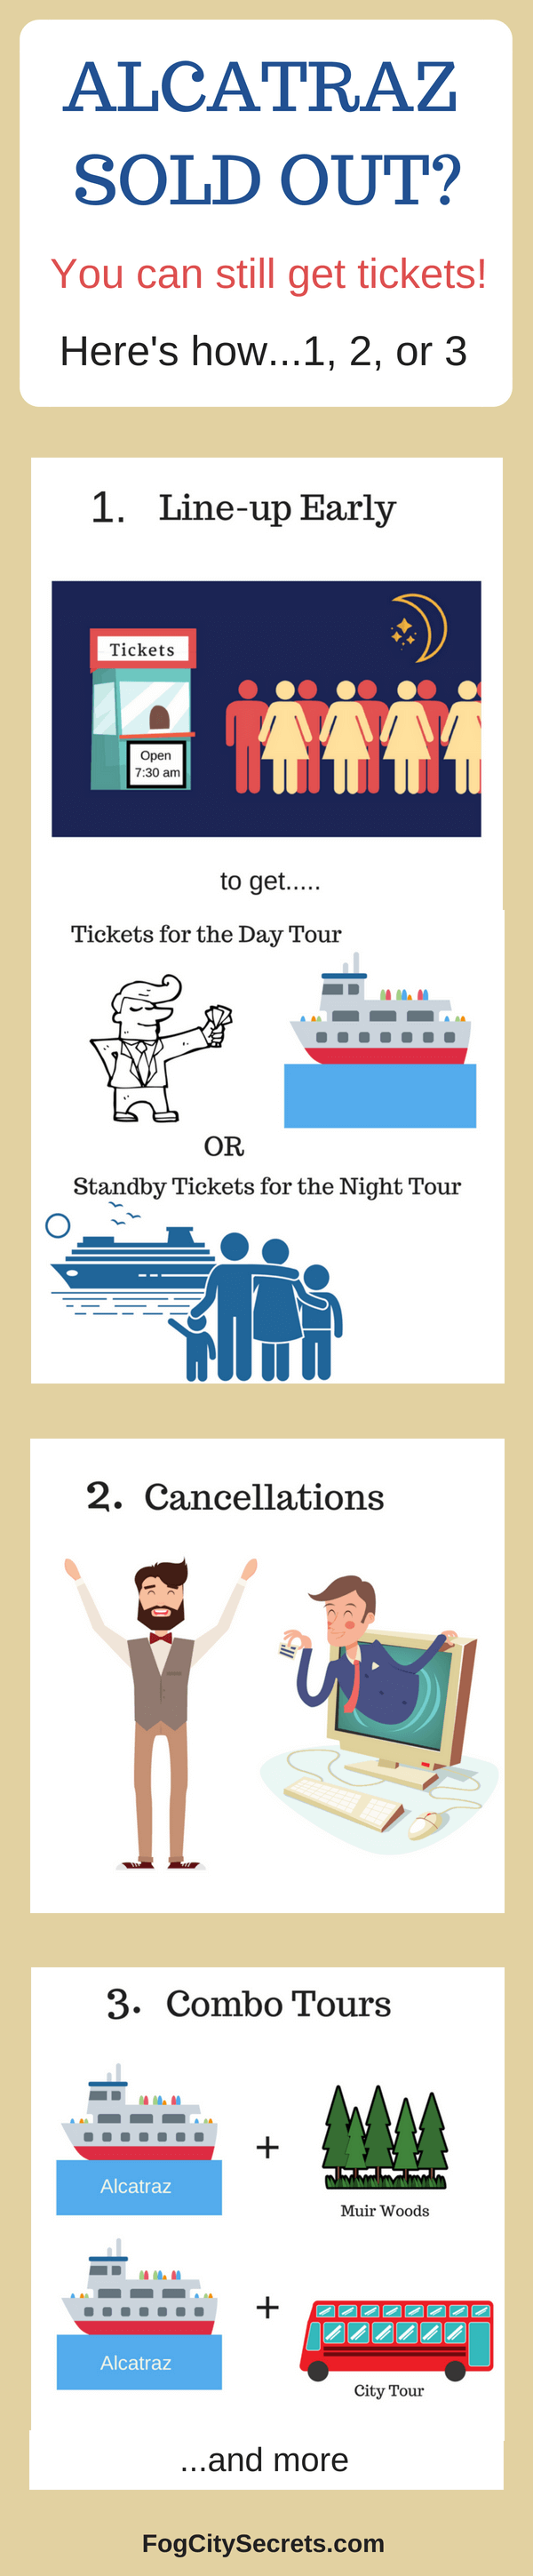 How to get Alcatraz tickets for sold out days, infographic.